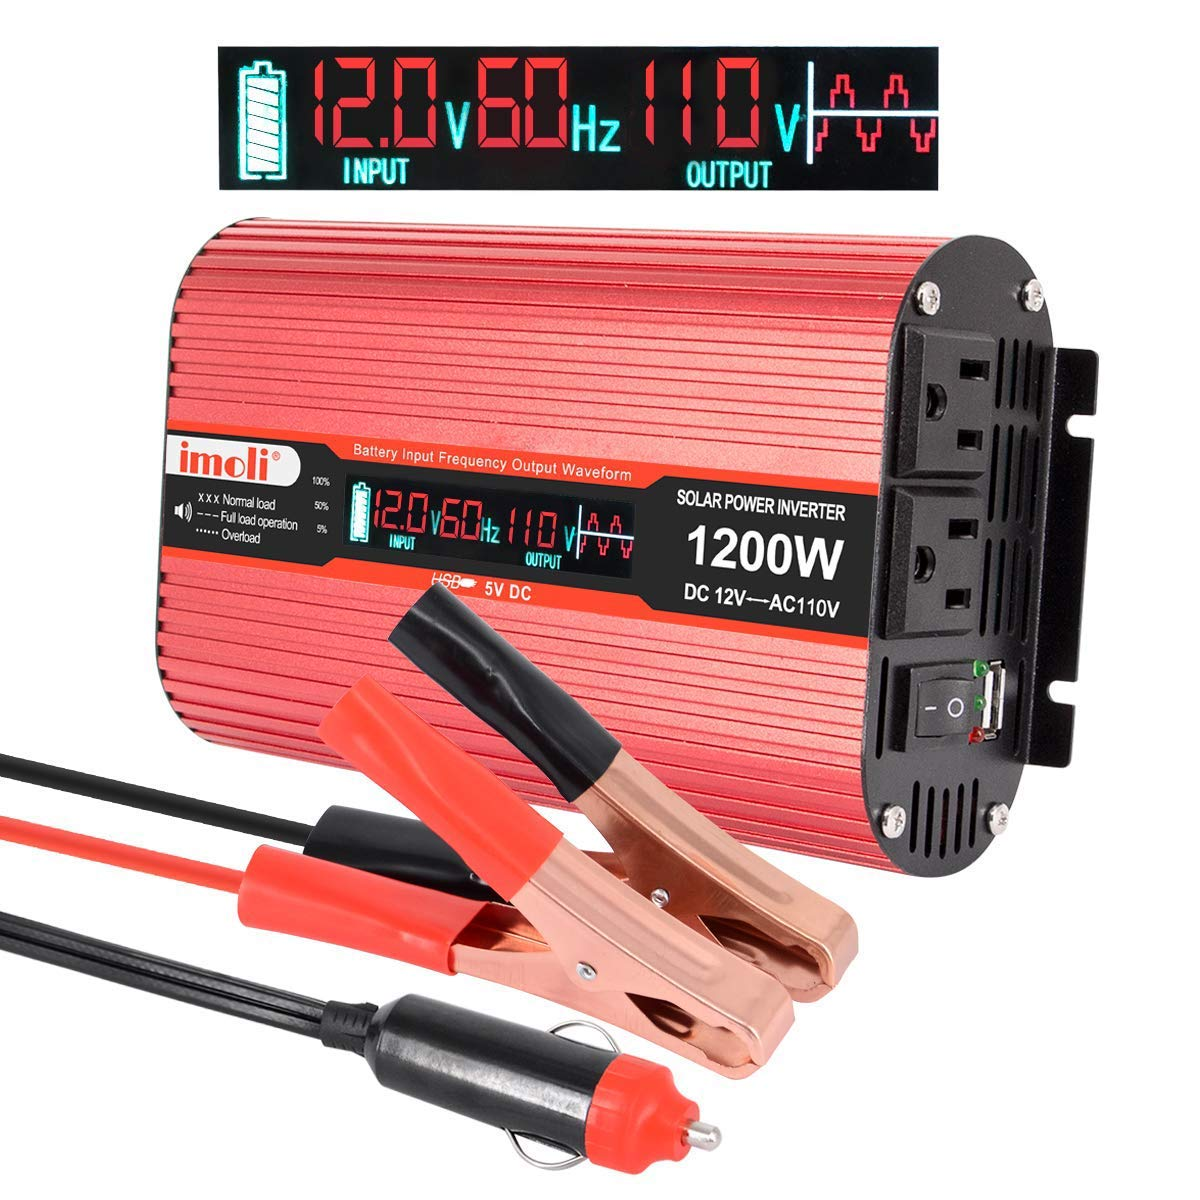 Car Power Inverter, imoli 1200W/2400W DC 12V to AC 110V Converter Automotive Modified Sine Wave 3.1A USB 2 AC Outlets with LCD Digital Display